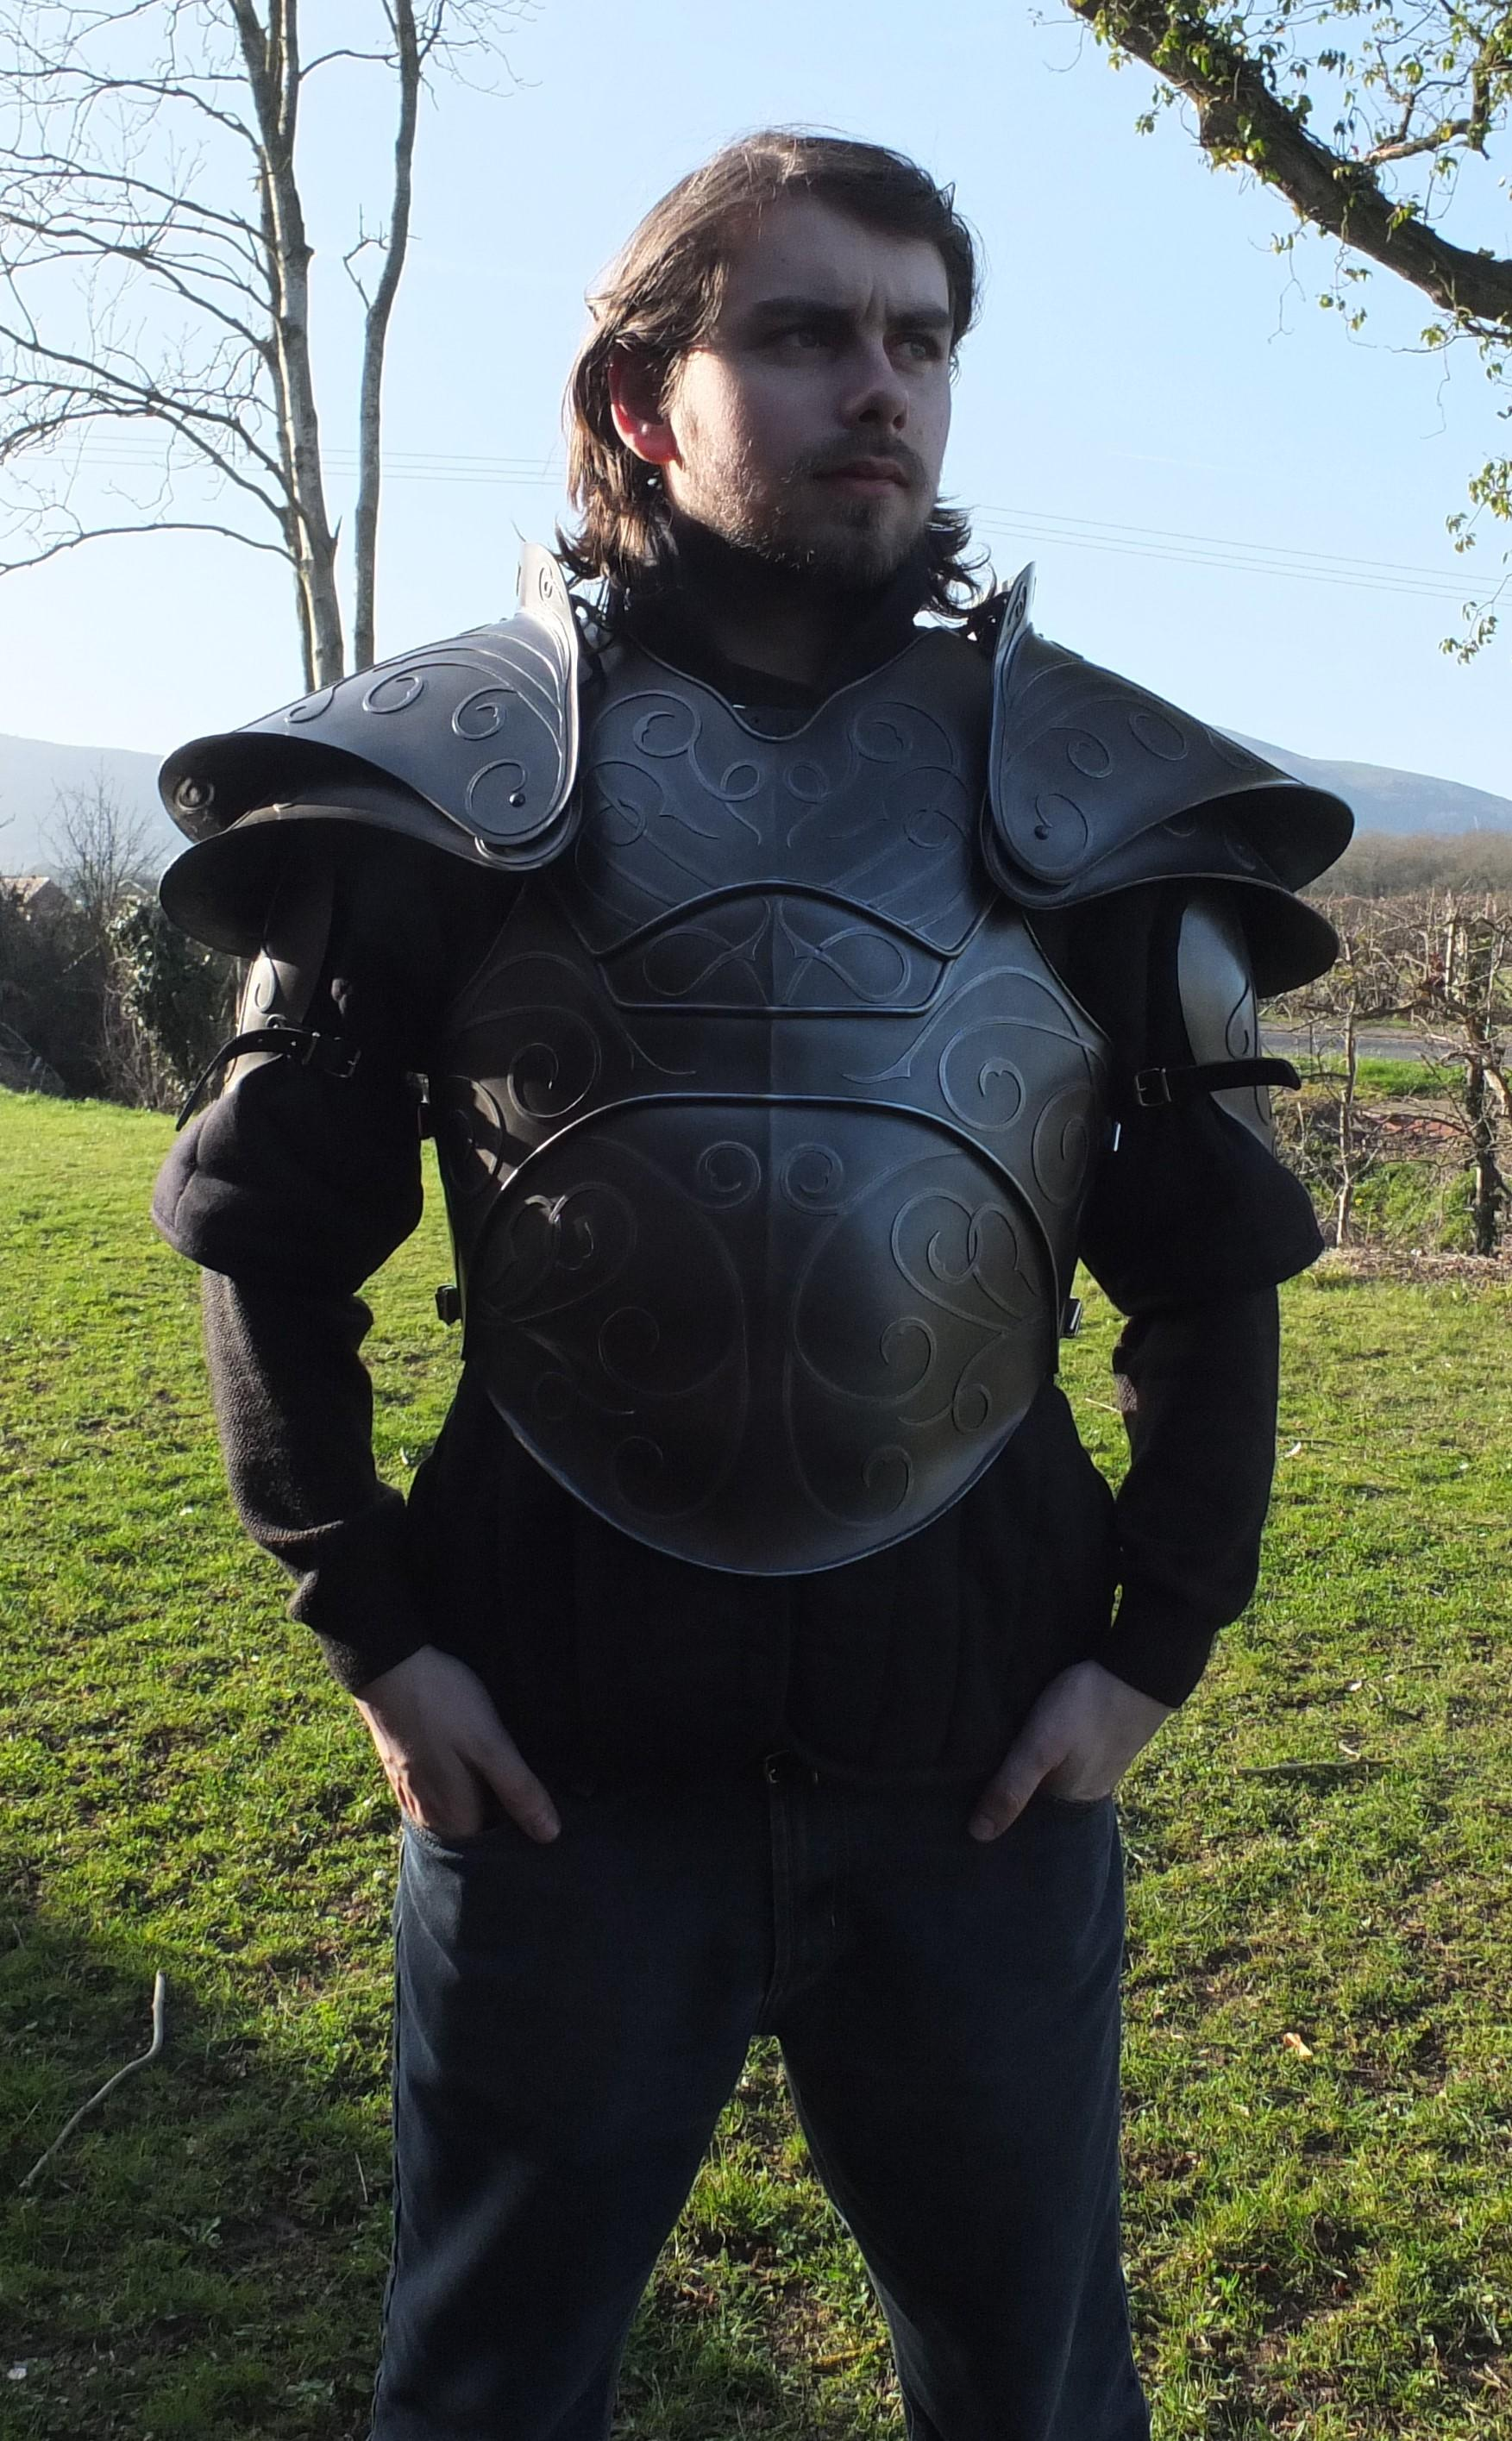 Citadel fantasy larp armour shoulders modelled